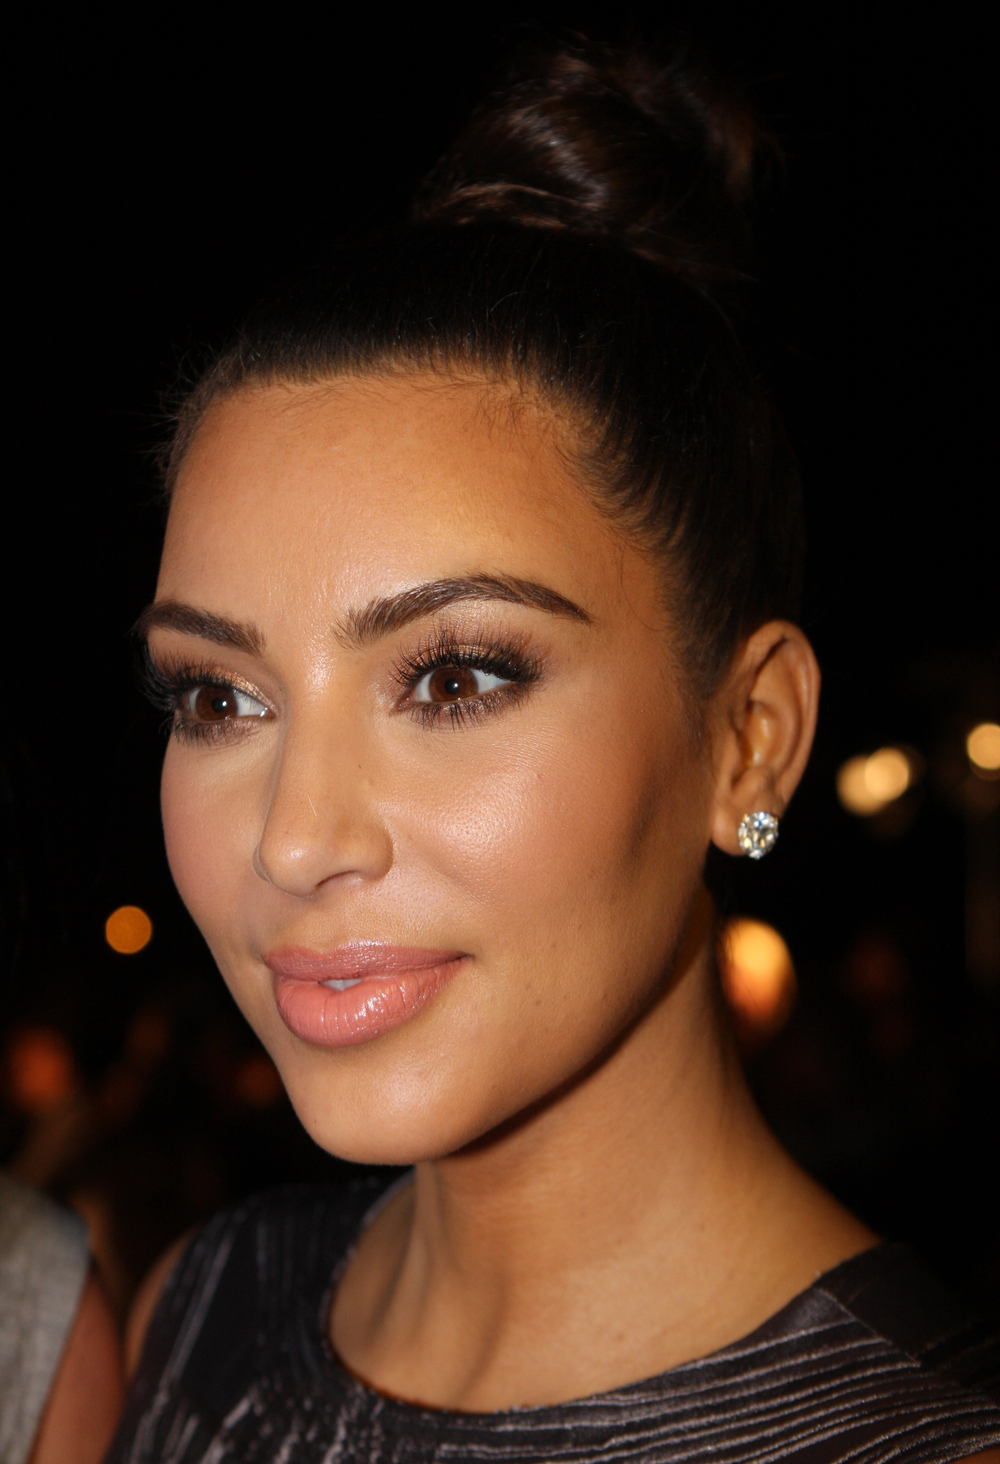 Description Kim Kardashian 2, 2012.jpg